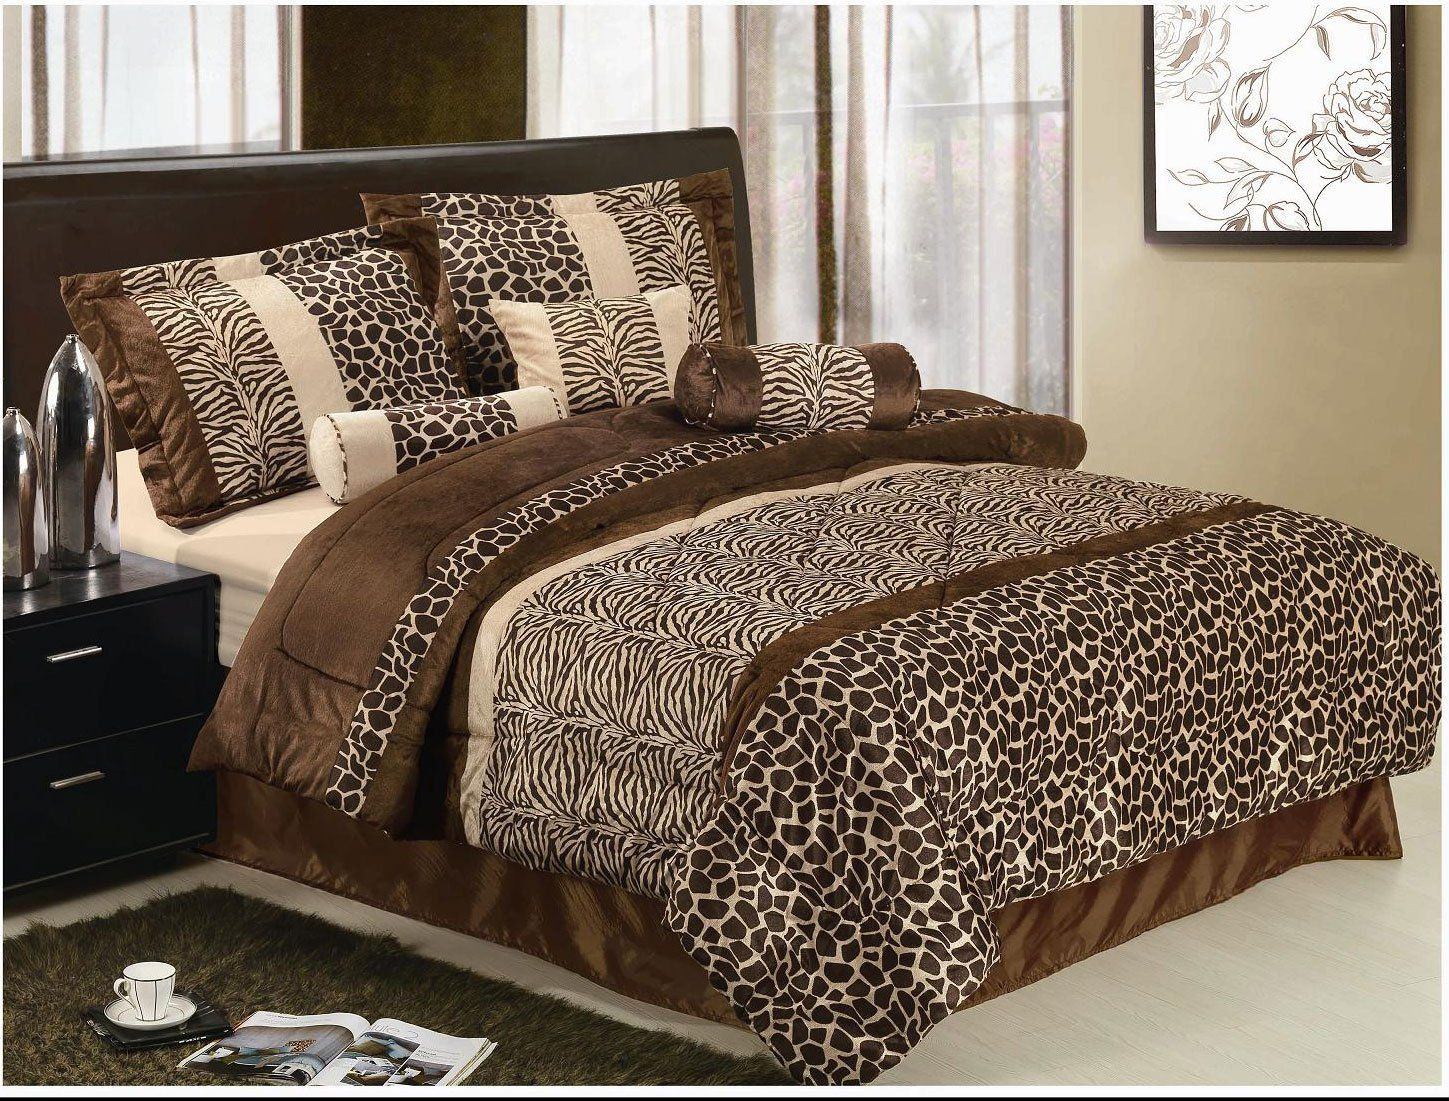 luxury animal bedding com bed leopard pattern atzine print amazing